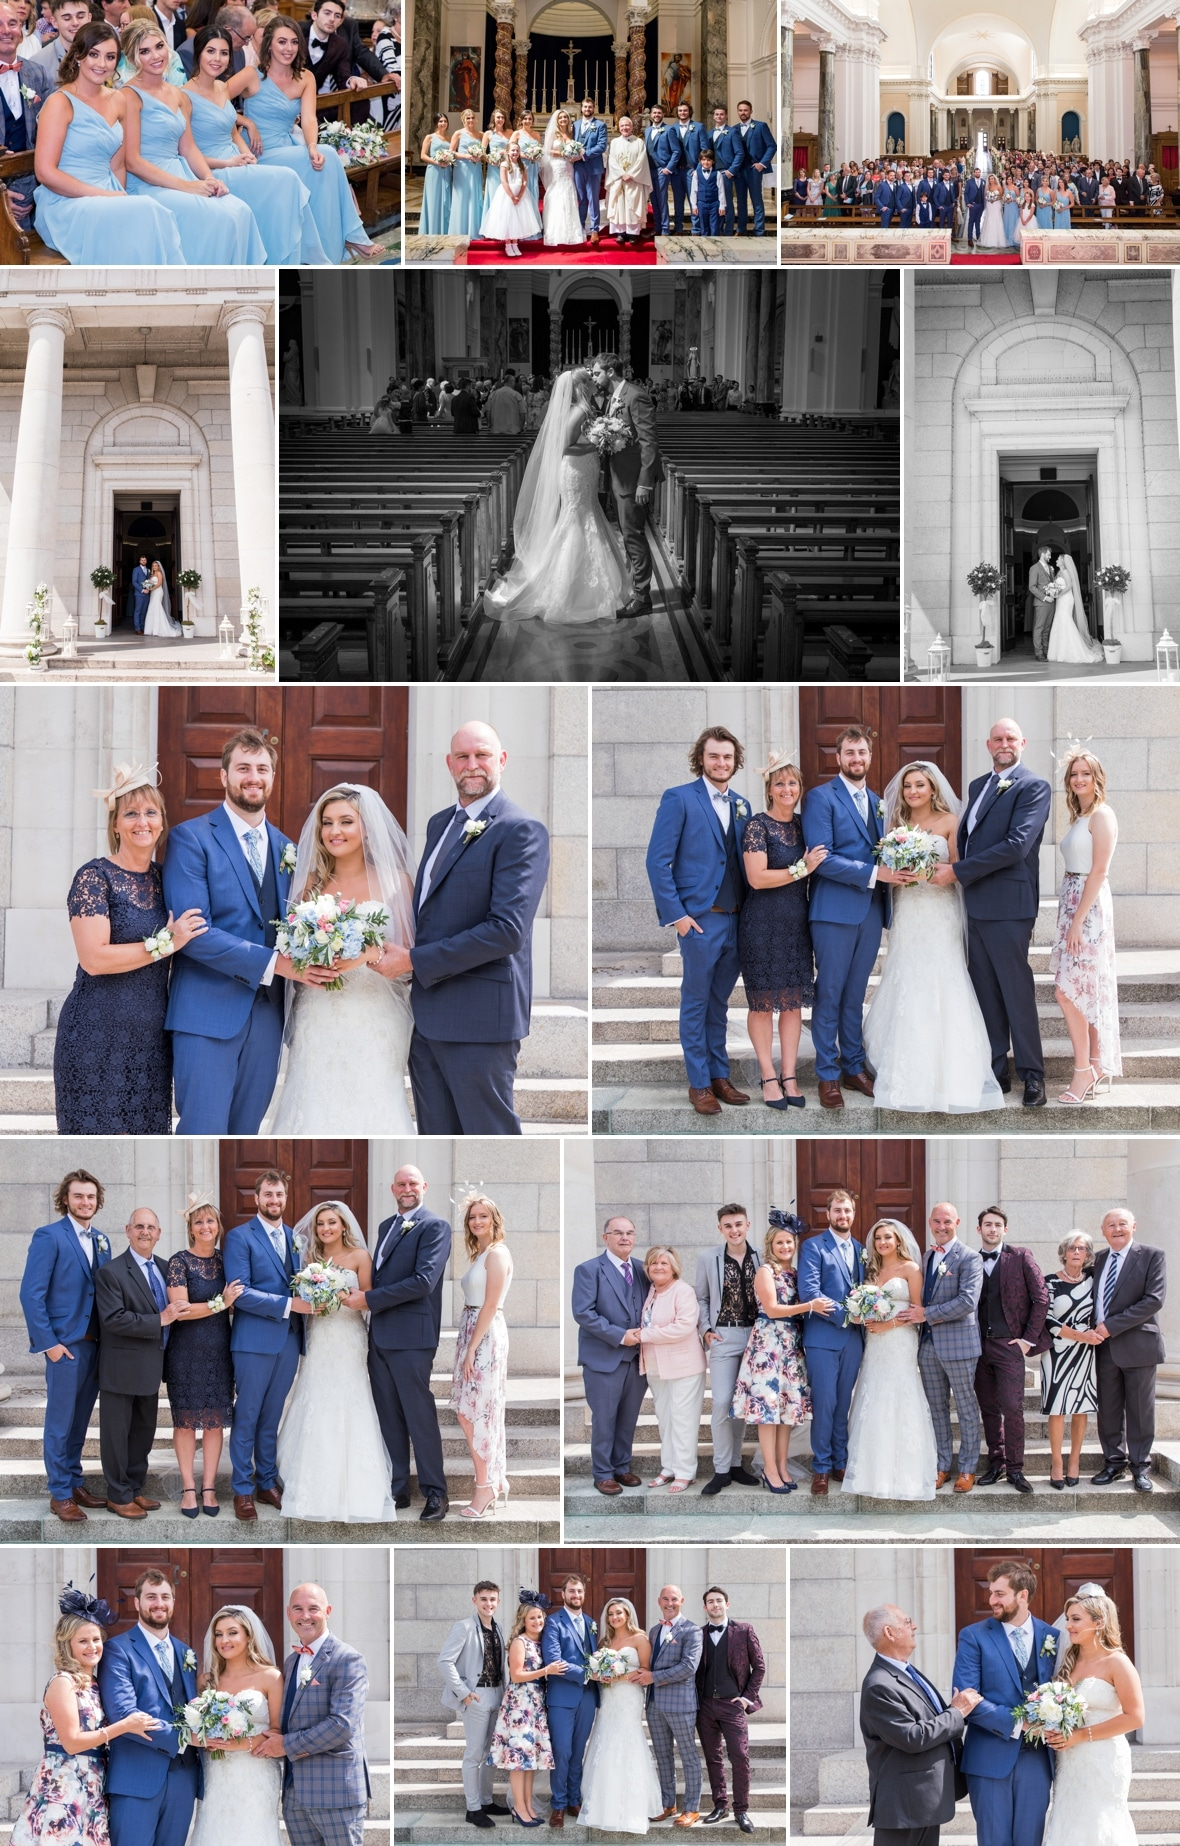 Summer Wedding of Sarah and Torin in Glasson Country House Hotel in Athlone Co. Westmeath